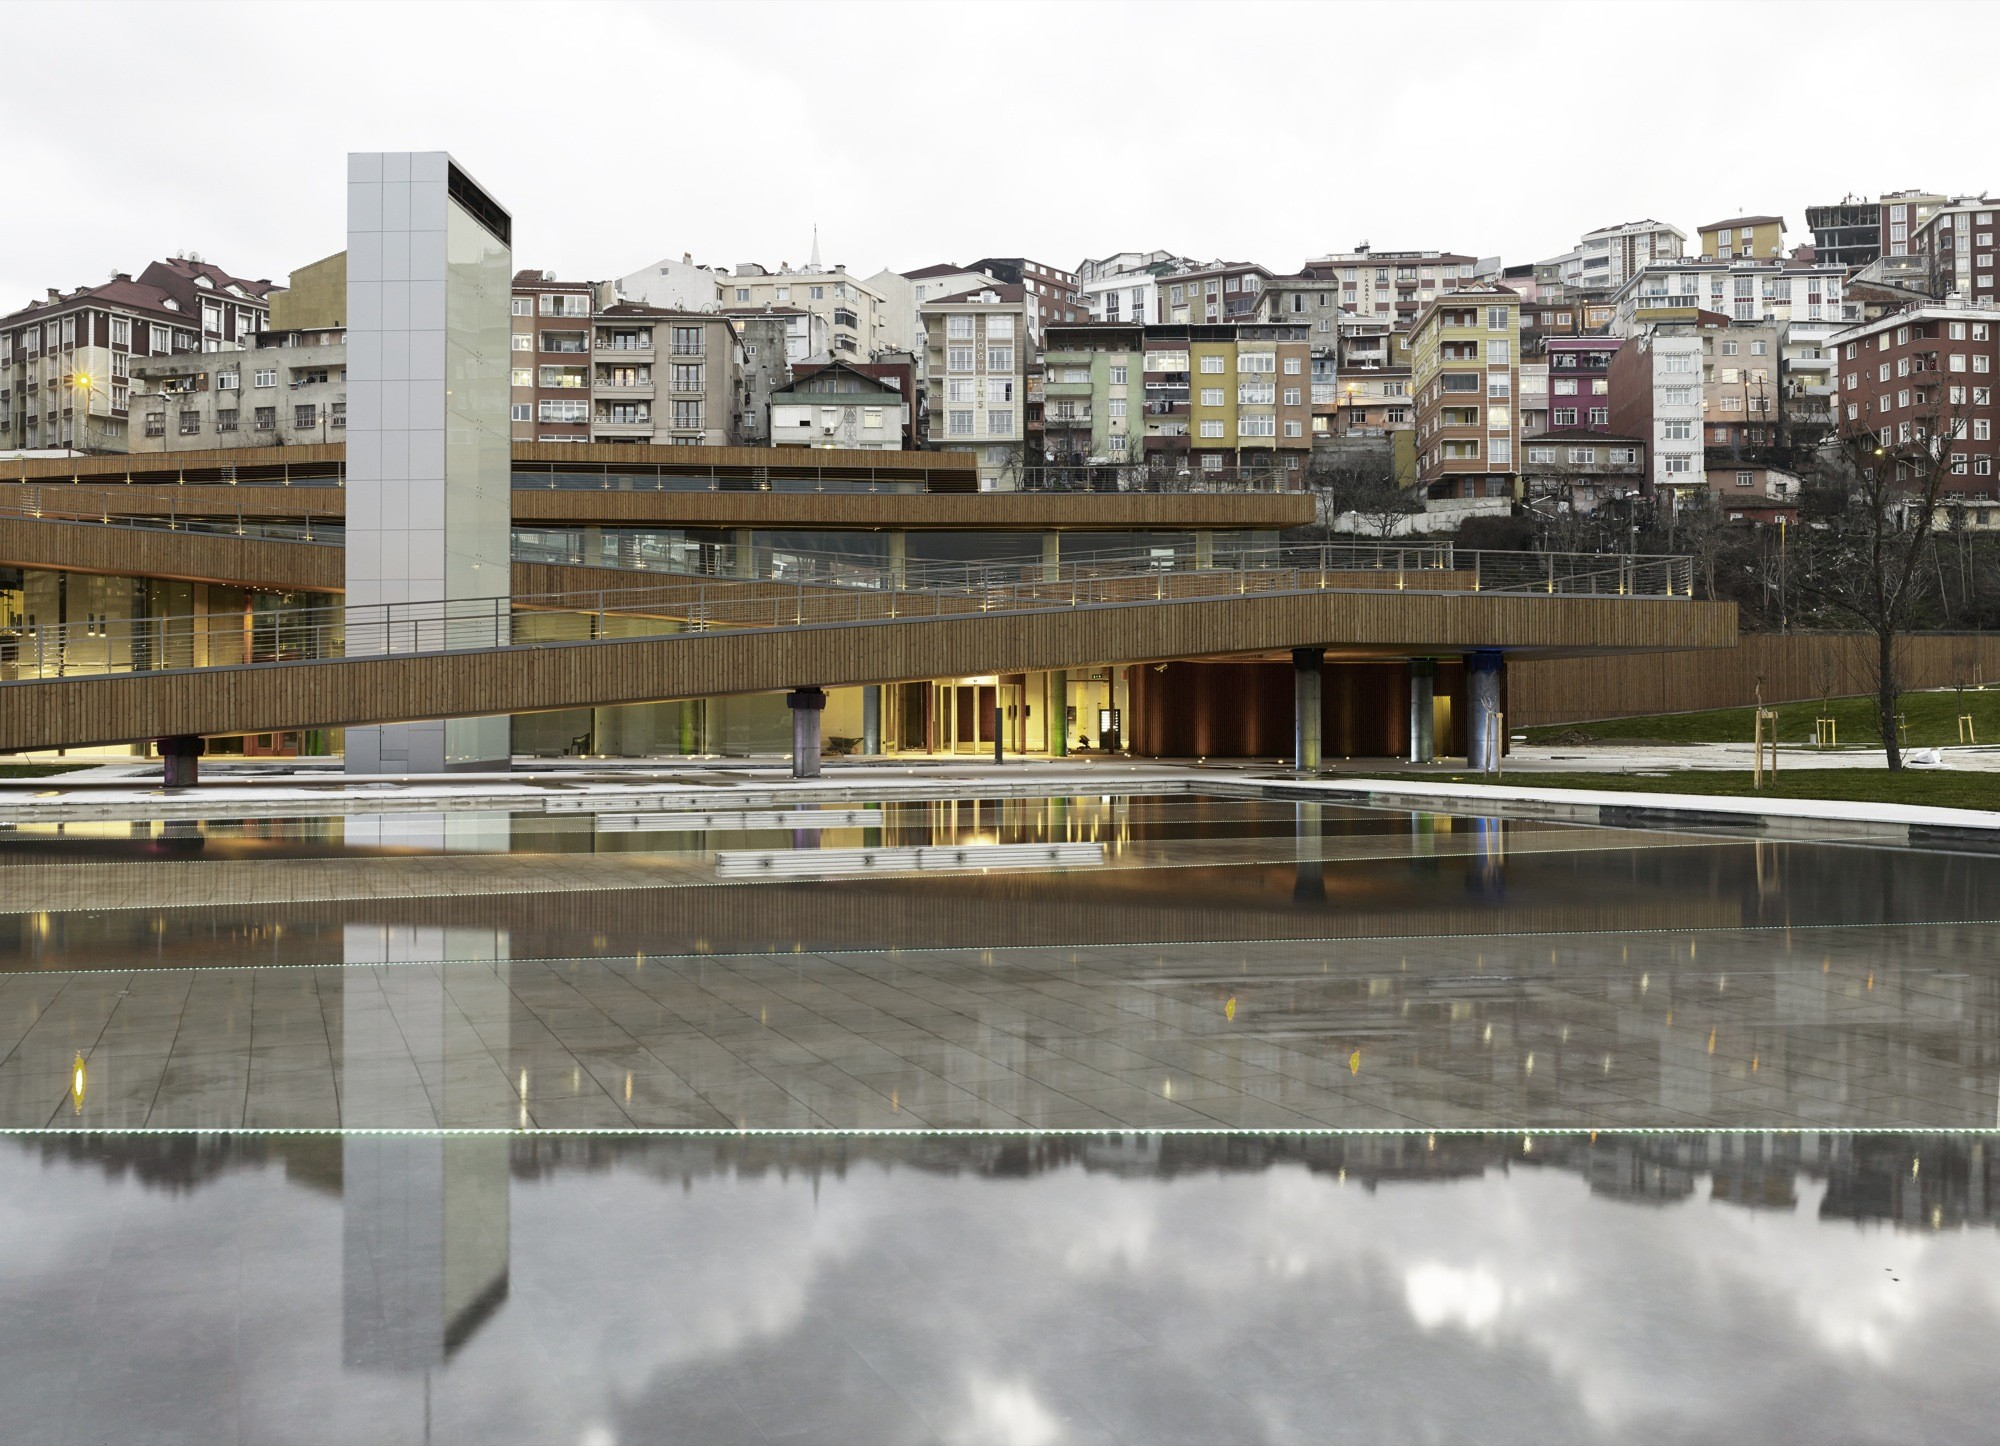 Eyüp Cultural Center and Marrıage Hall / Emre Arolat Architects, © Cemal Emden